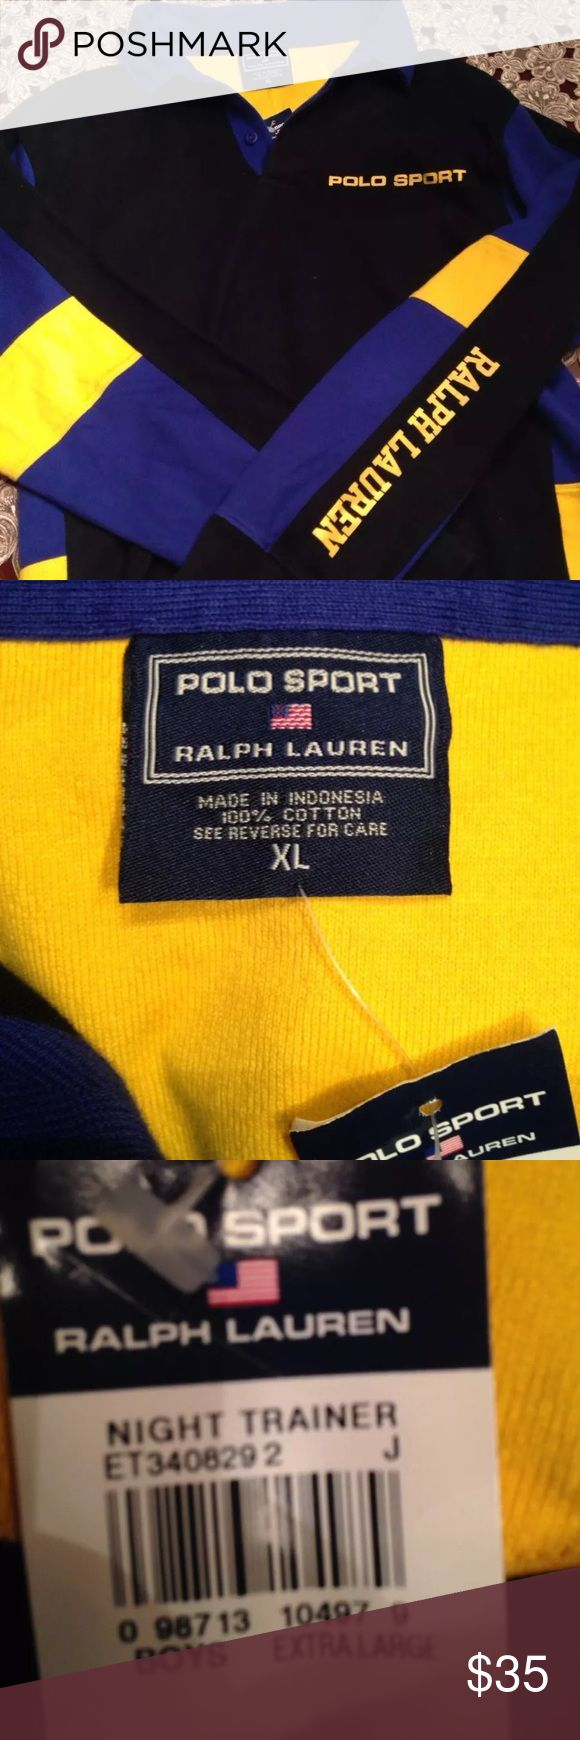 Polo Sport Ralph Lauren Kids Long Sleeve Tee Great condition Polo by Ralph Lauren Shirts & Tops Polos